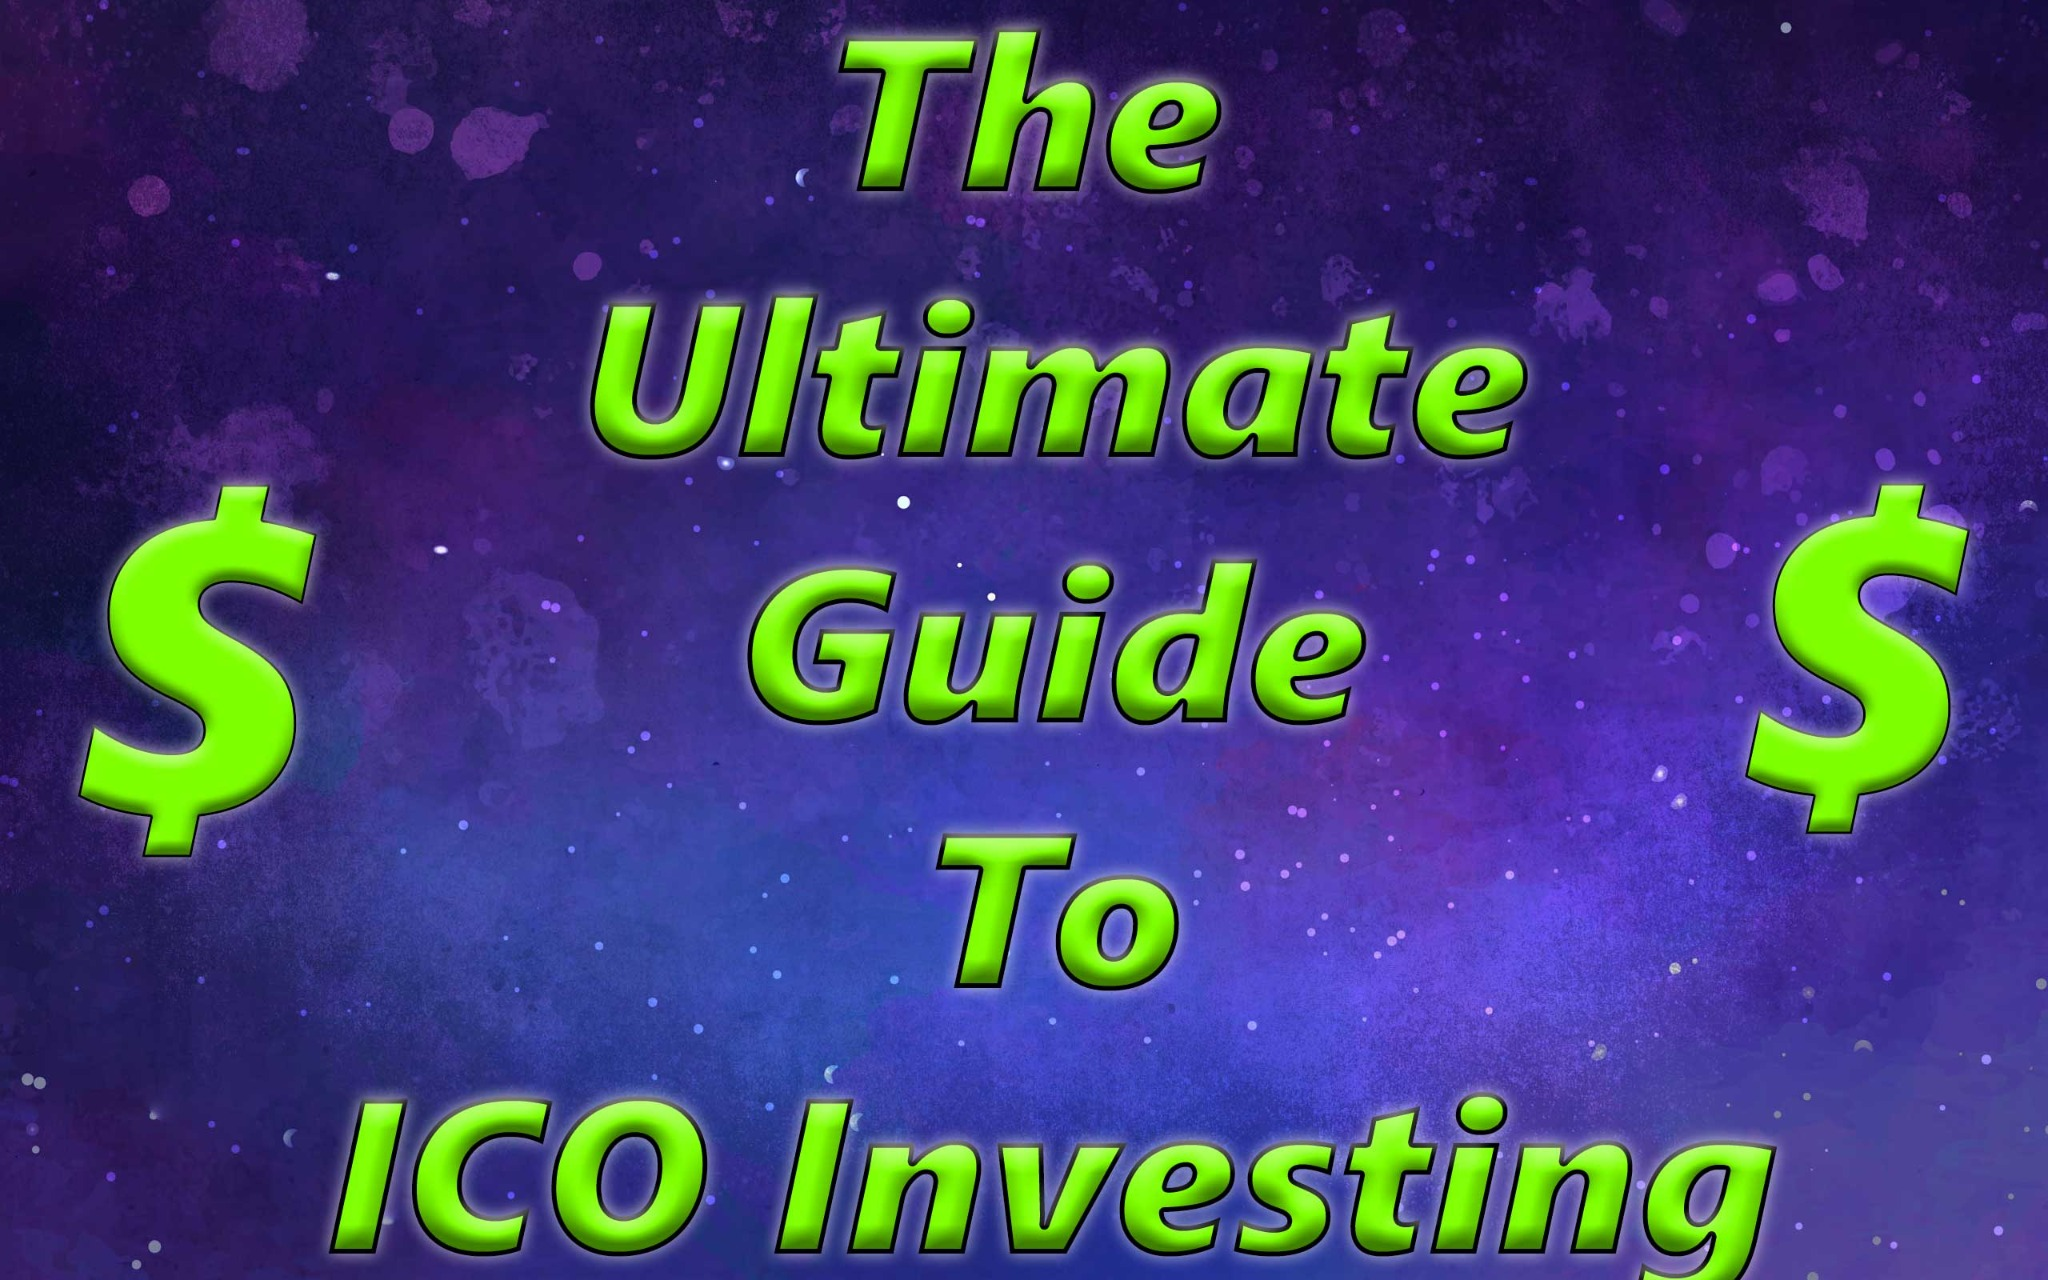 The Ultimate Guide To ICO Investing (Cryptocurrency)